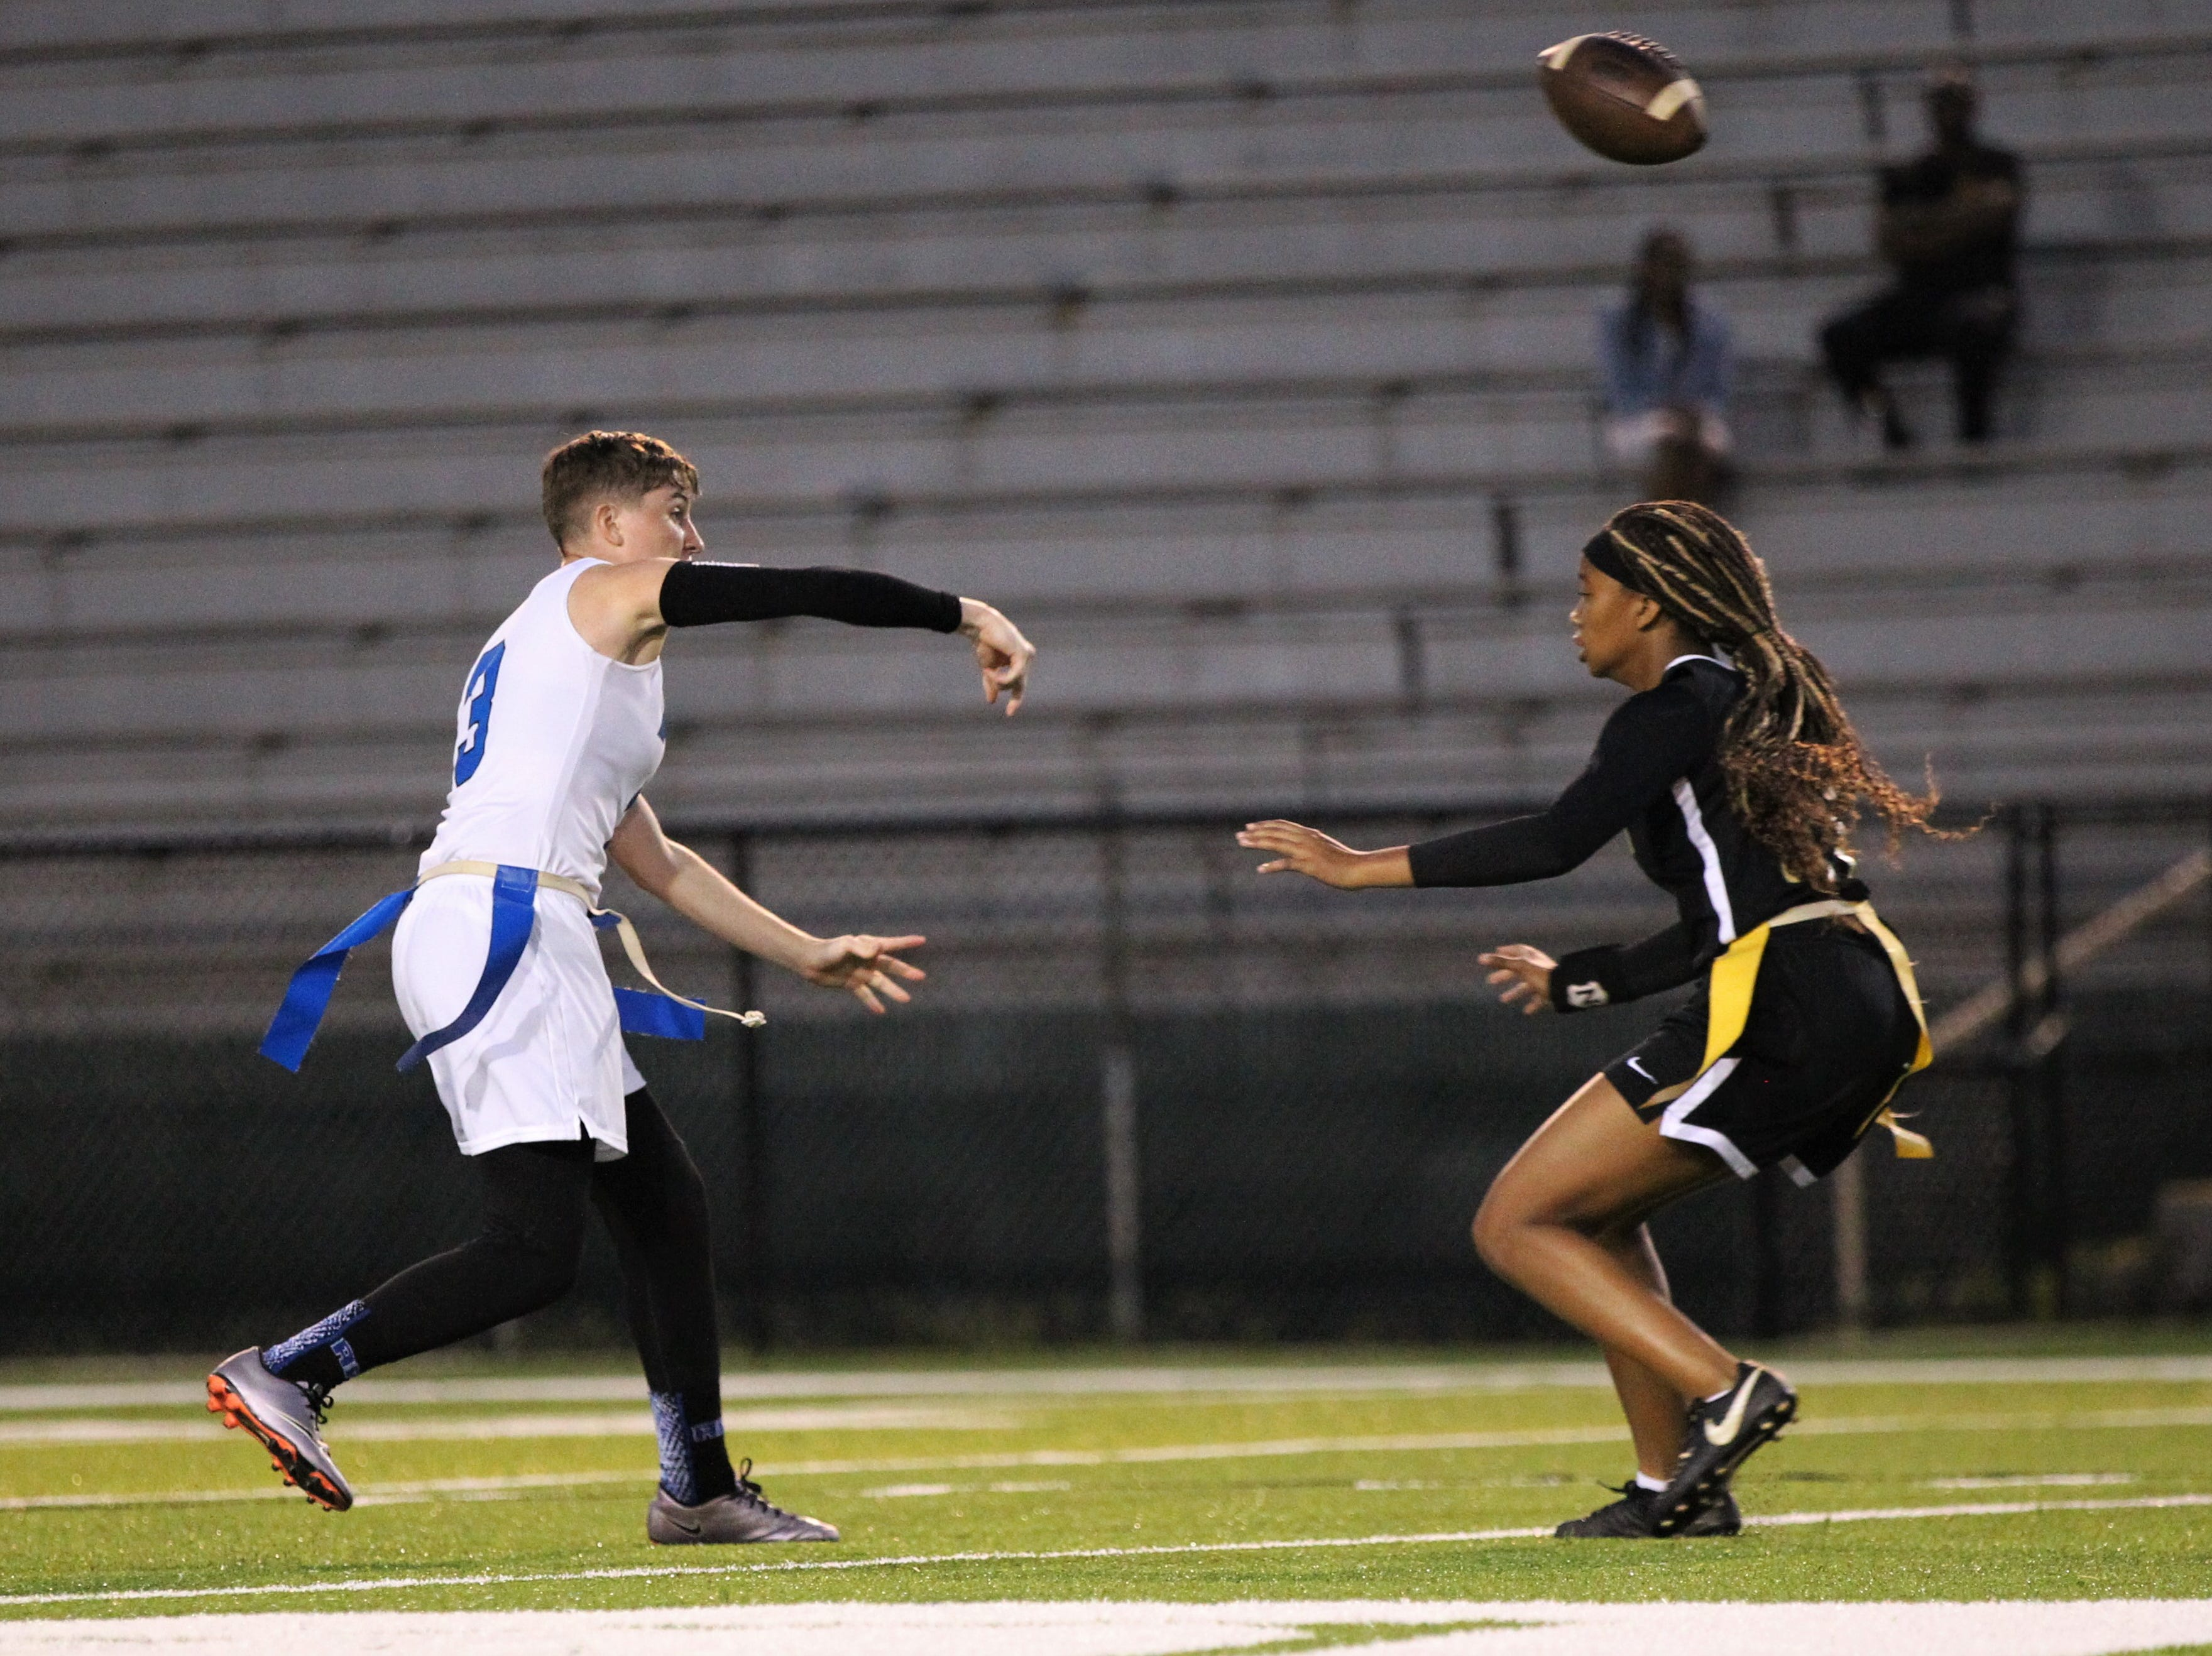 Godby senior quarterback Kaylene Colburn makes a pass as Godby's flag football team beat Lincoln 25-6 at Gene Cox Stadium on March 14, 2019.